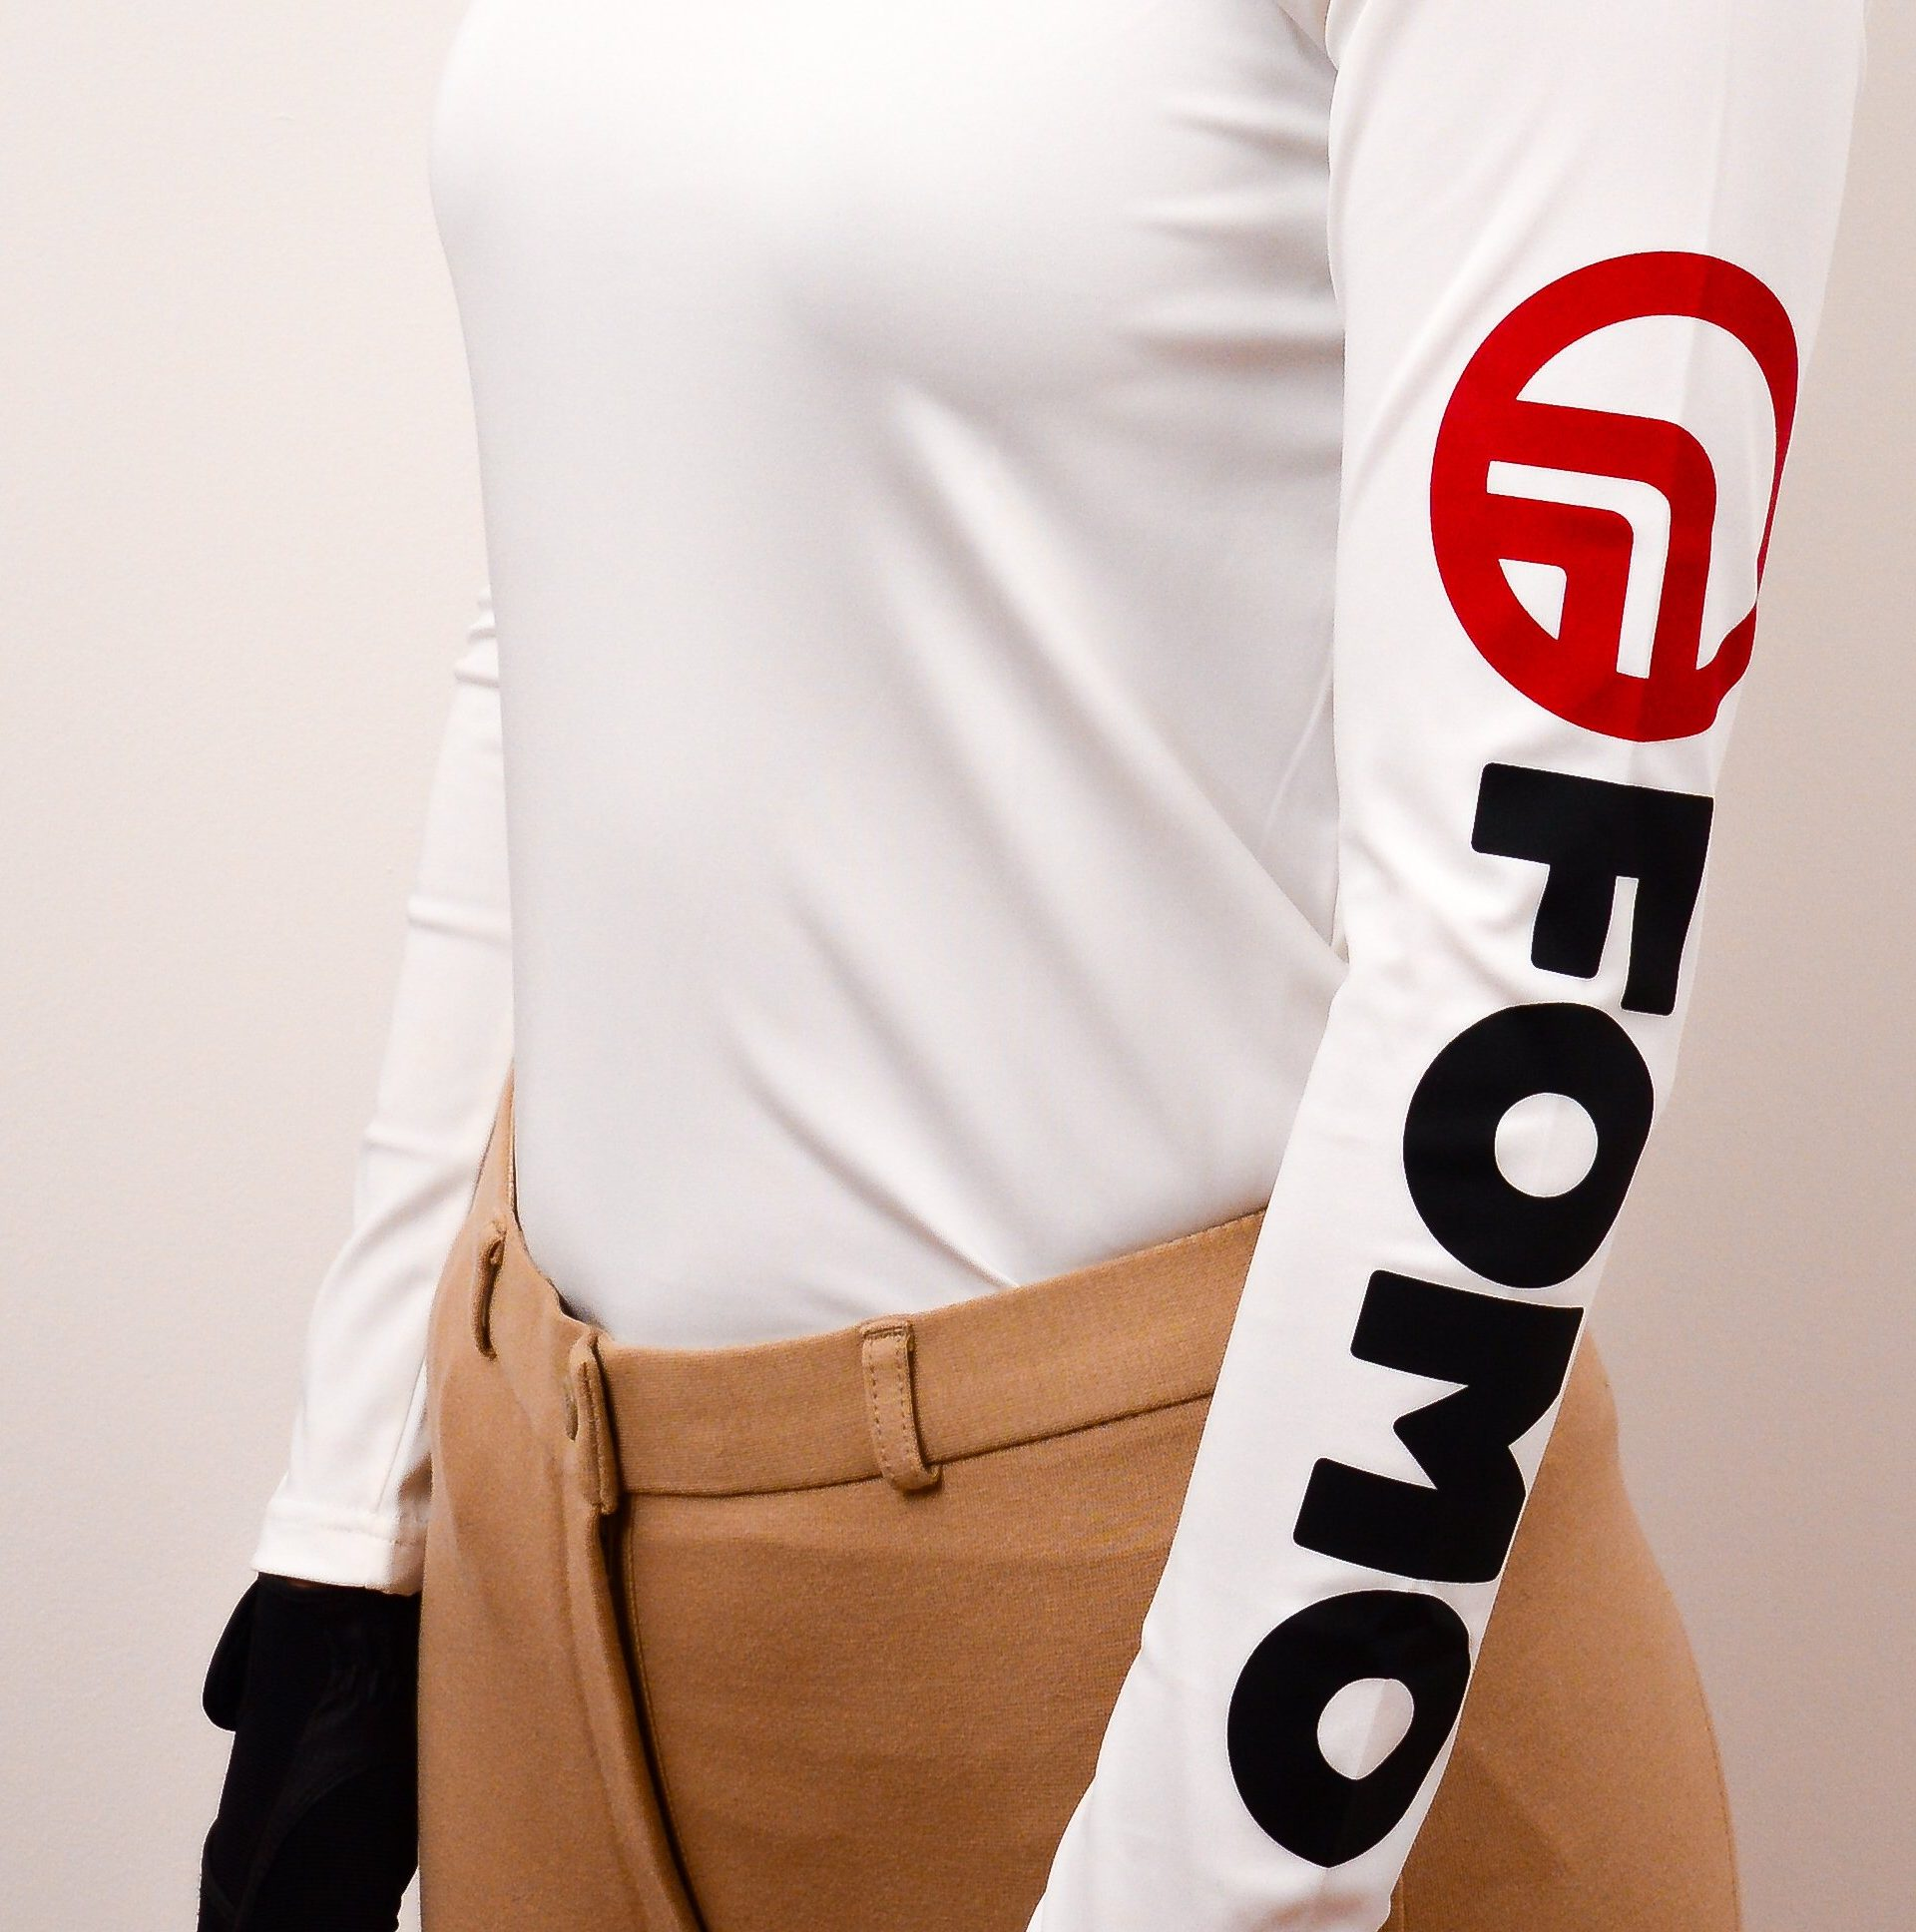 https://www.fomoprotection.com/wp-content/uploads/2019/11/Baselayer-e1574325668140.jpg